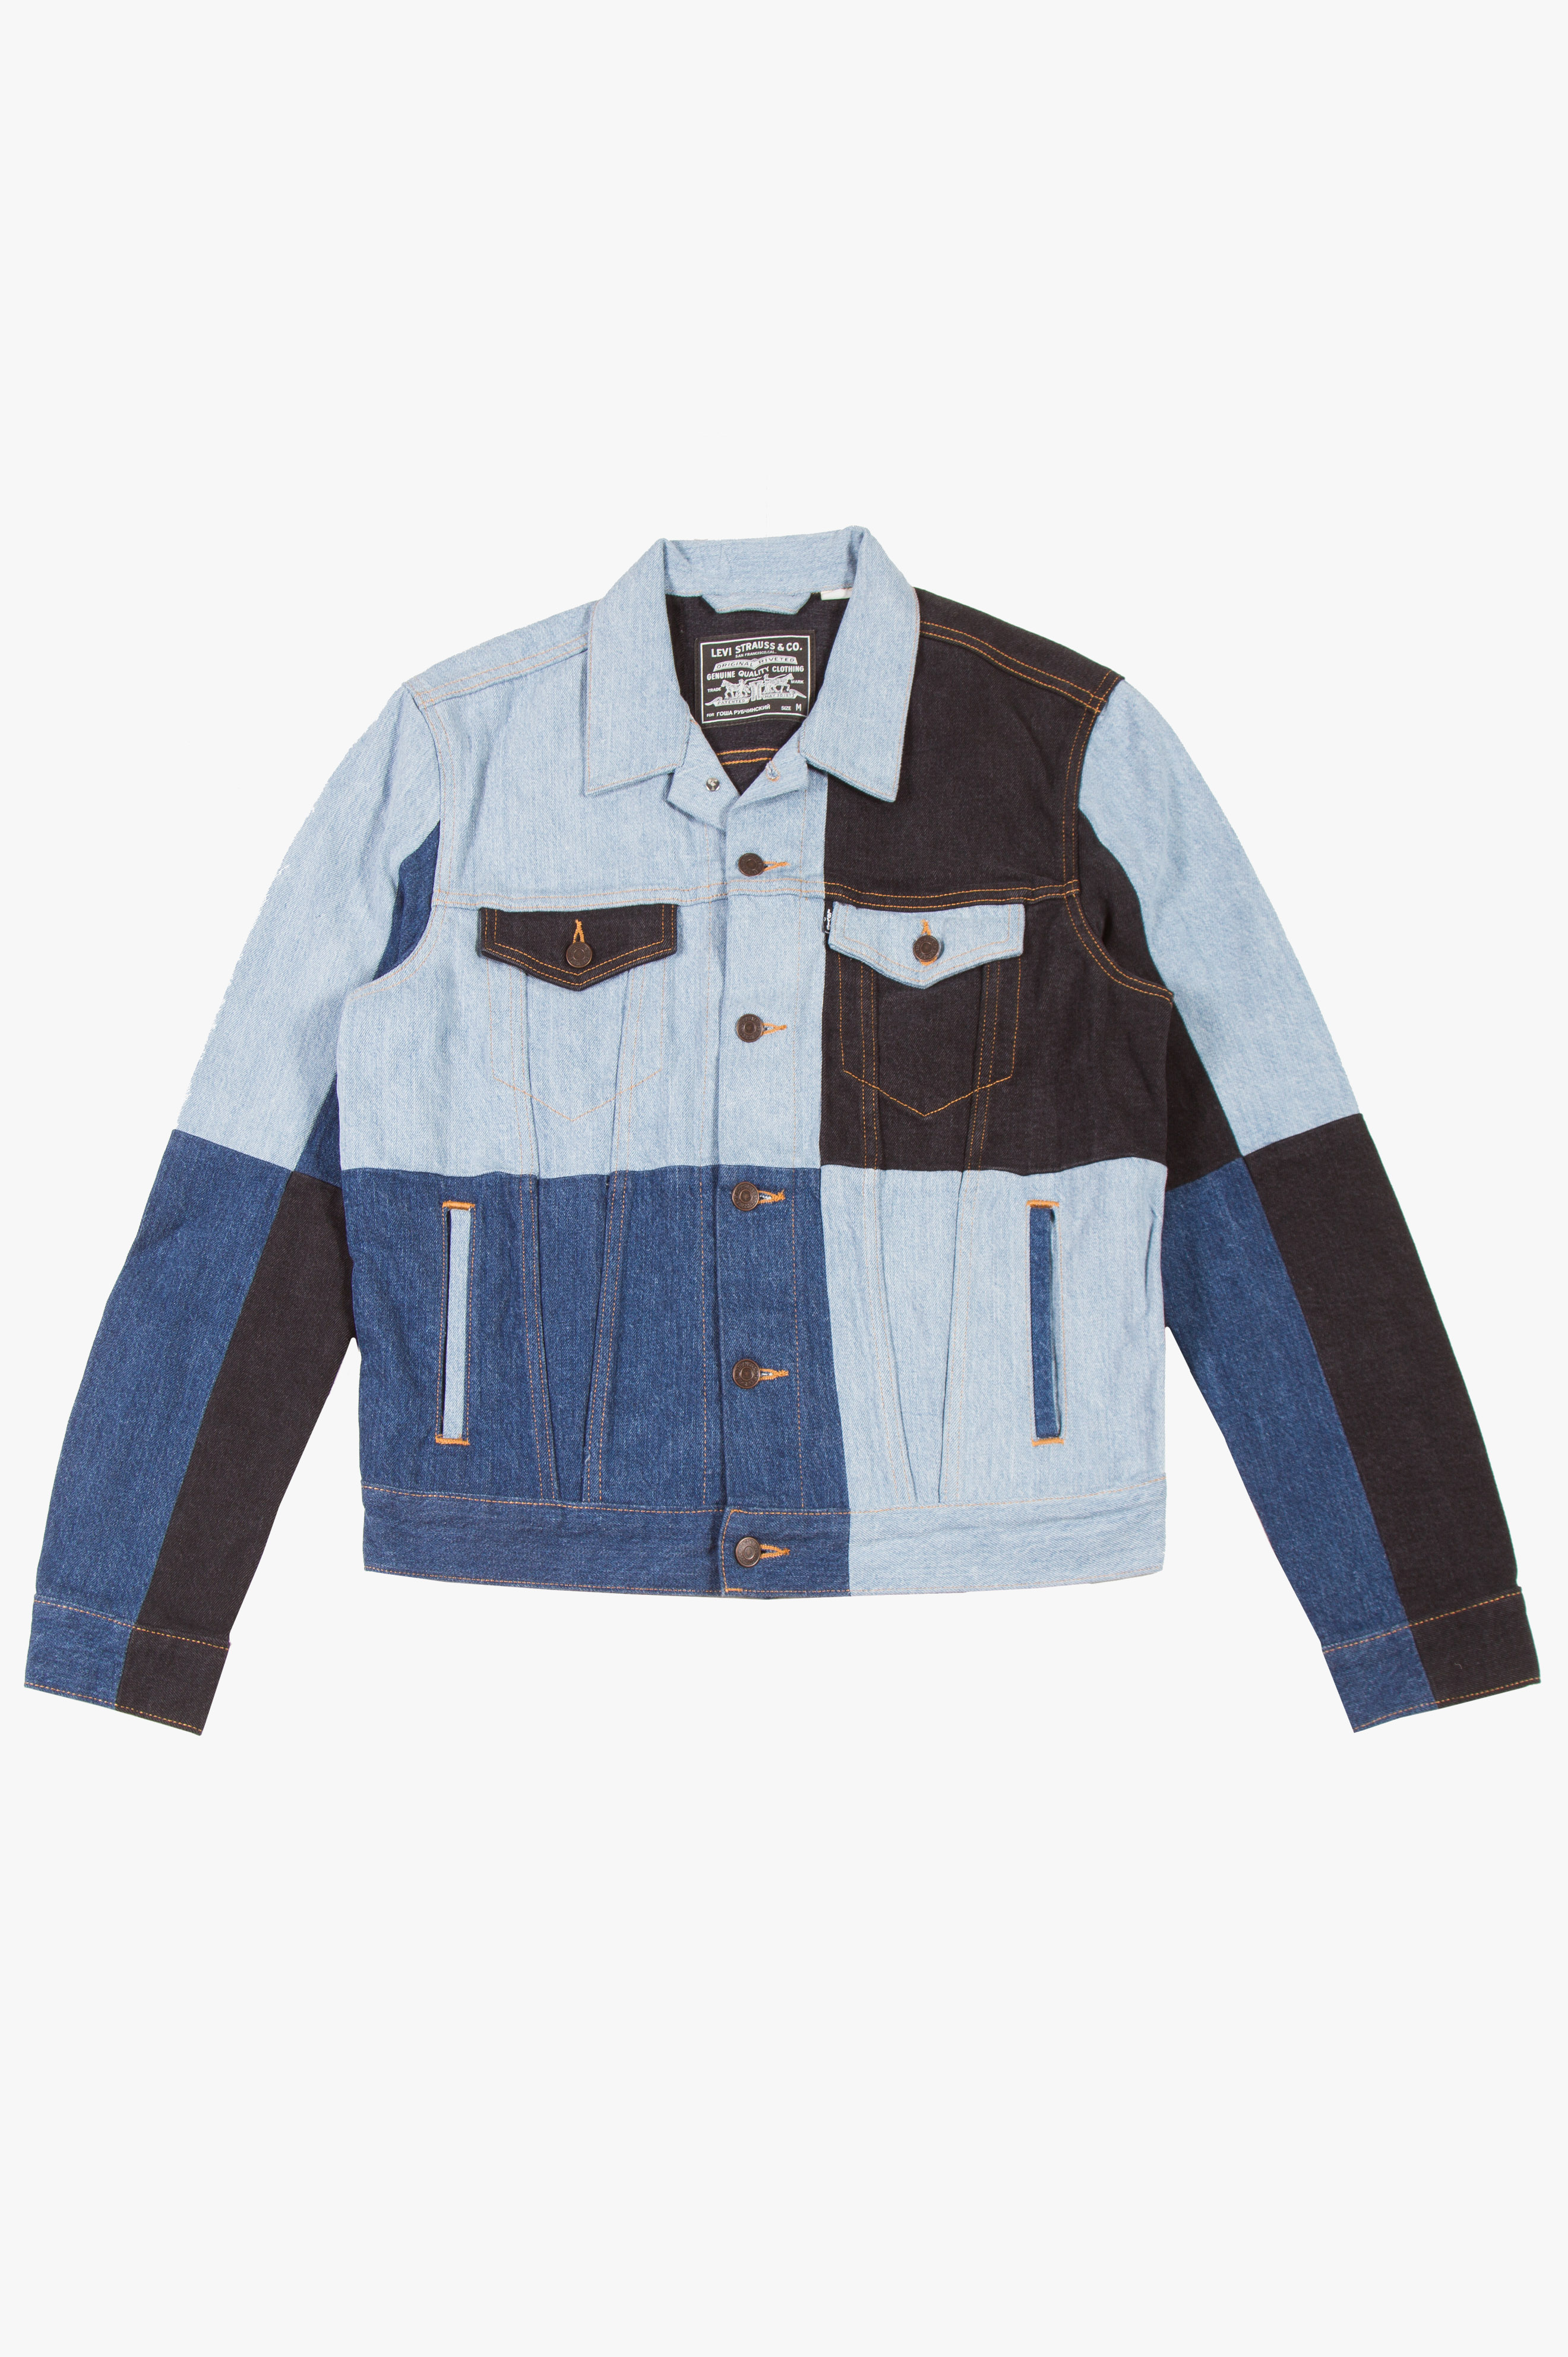 x Levi's Patchwork Jacket